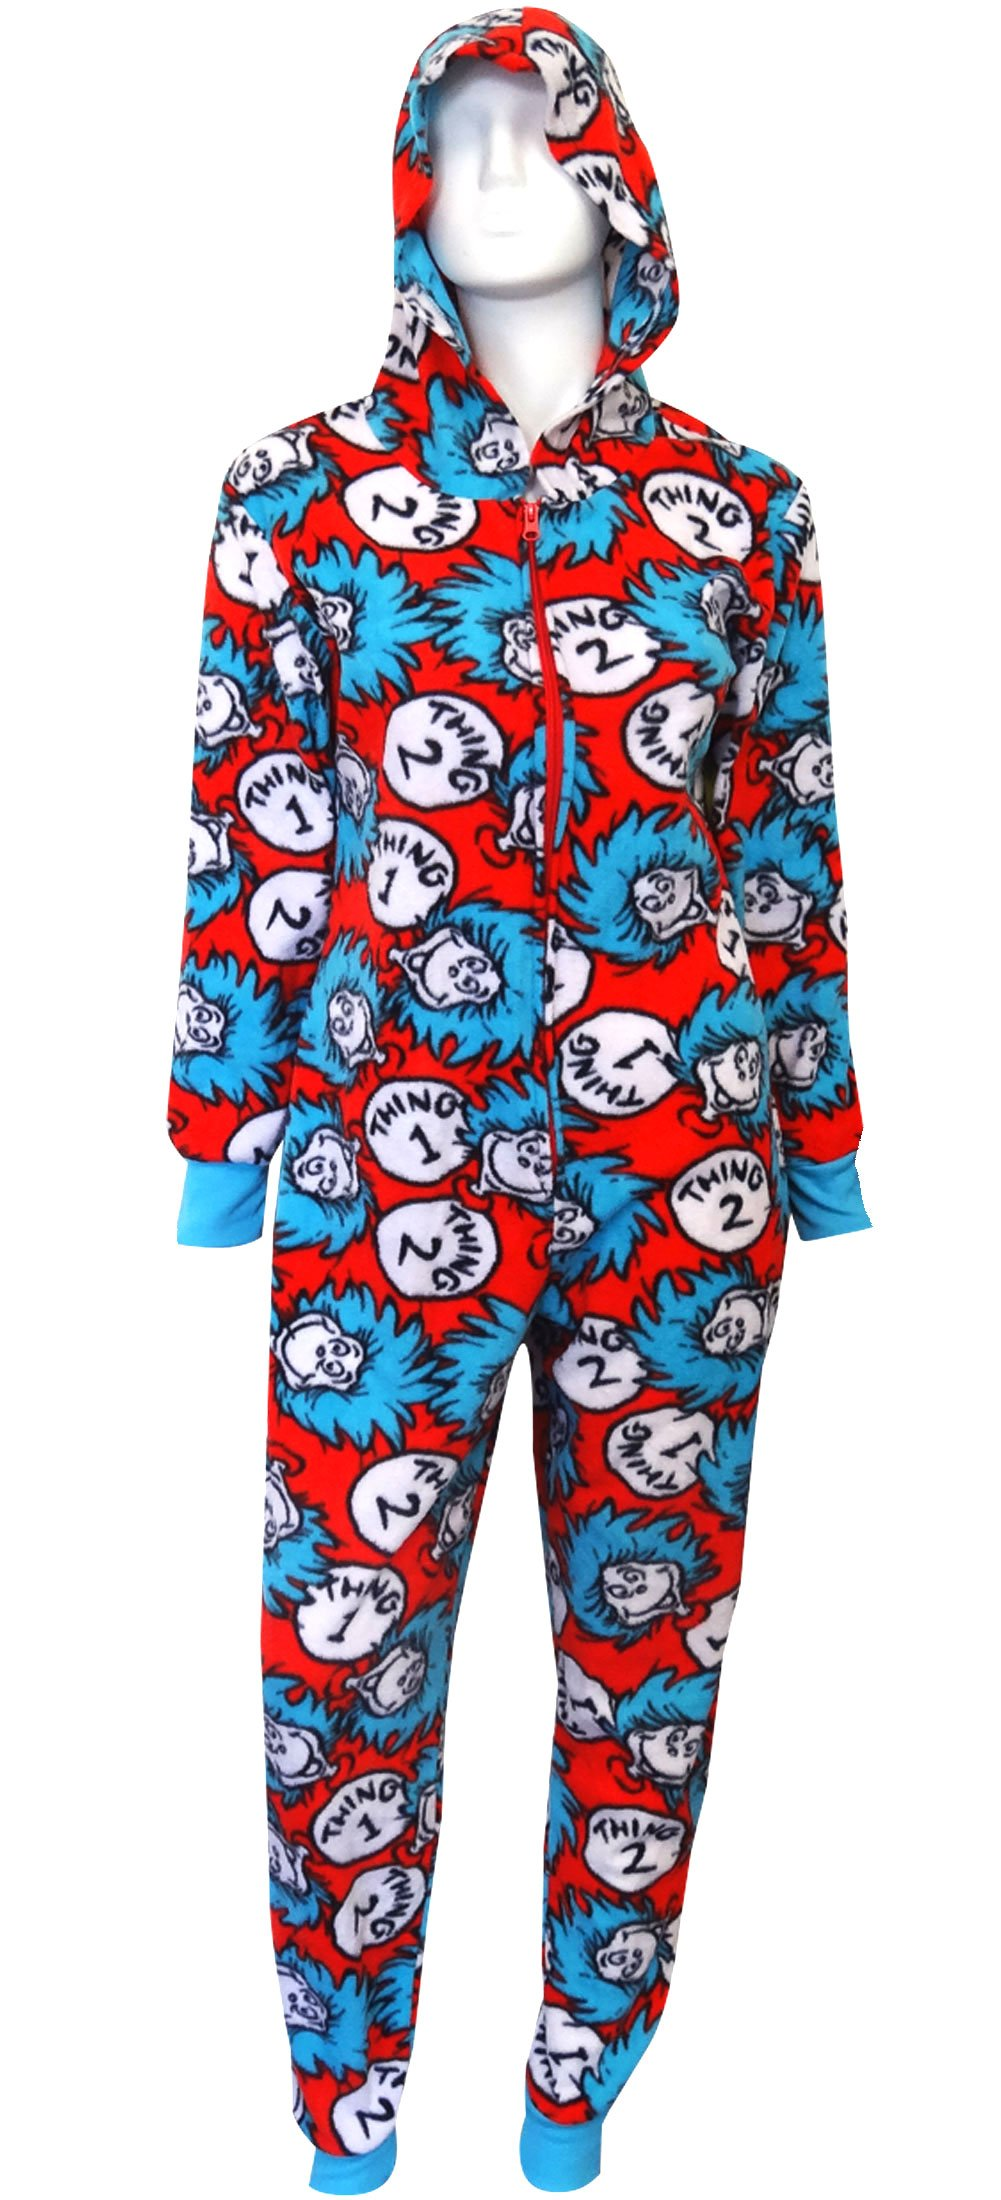 Dr Seuss Thing One & Thing Two Hooded Onesie Pajama for women